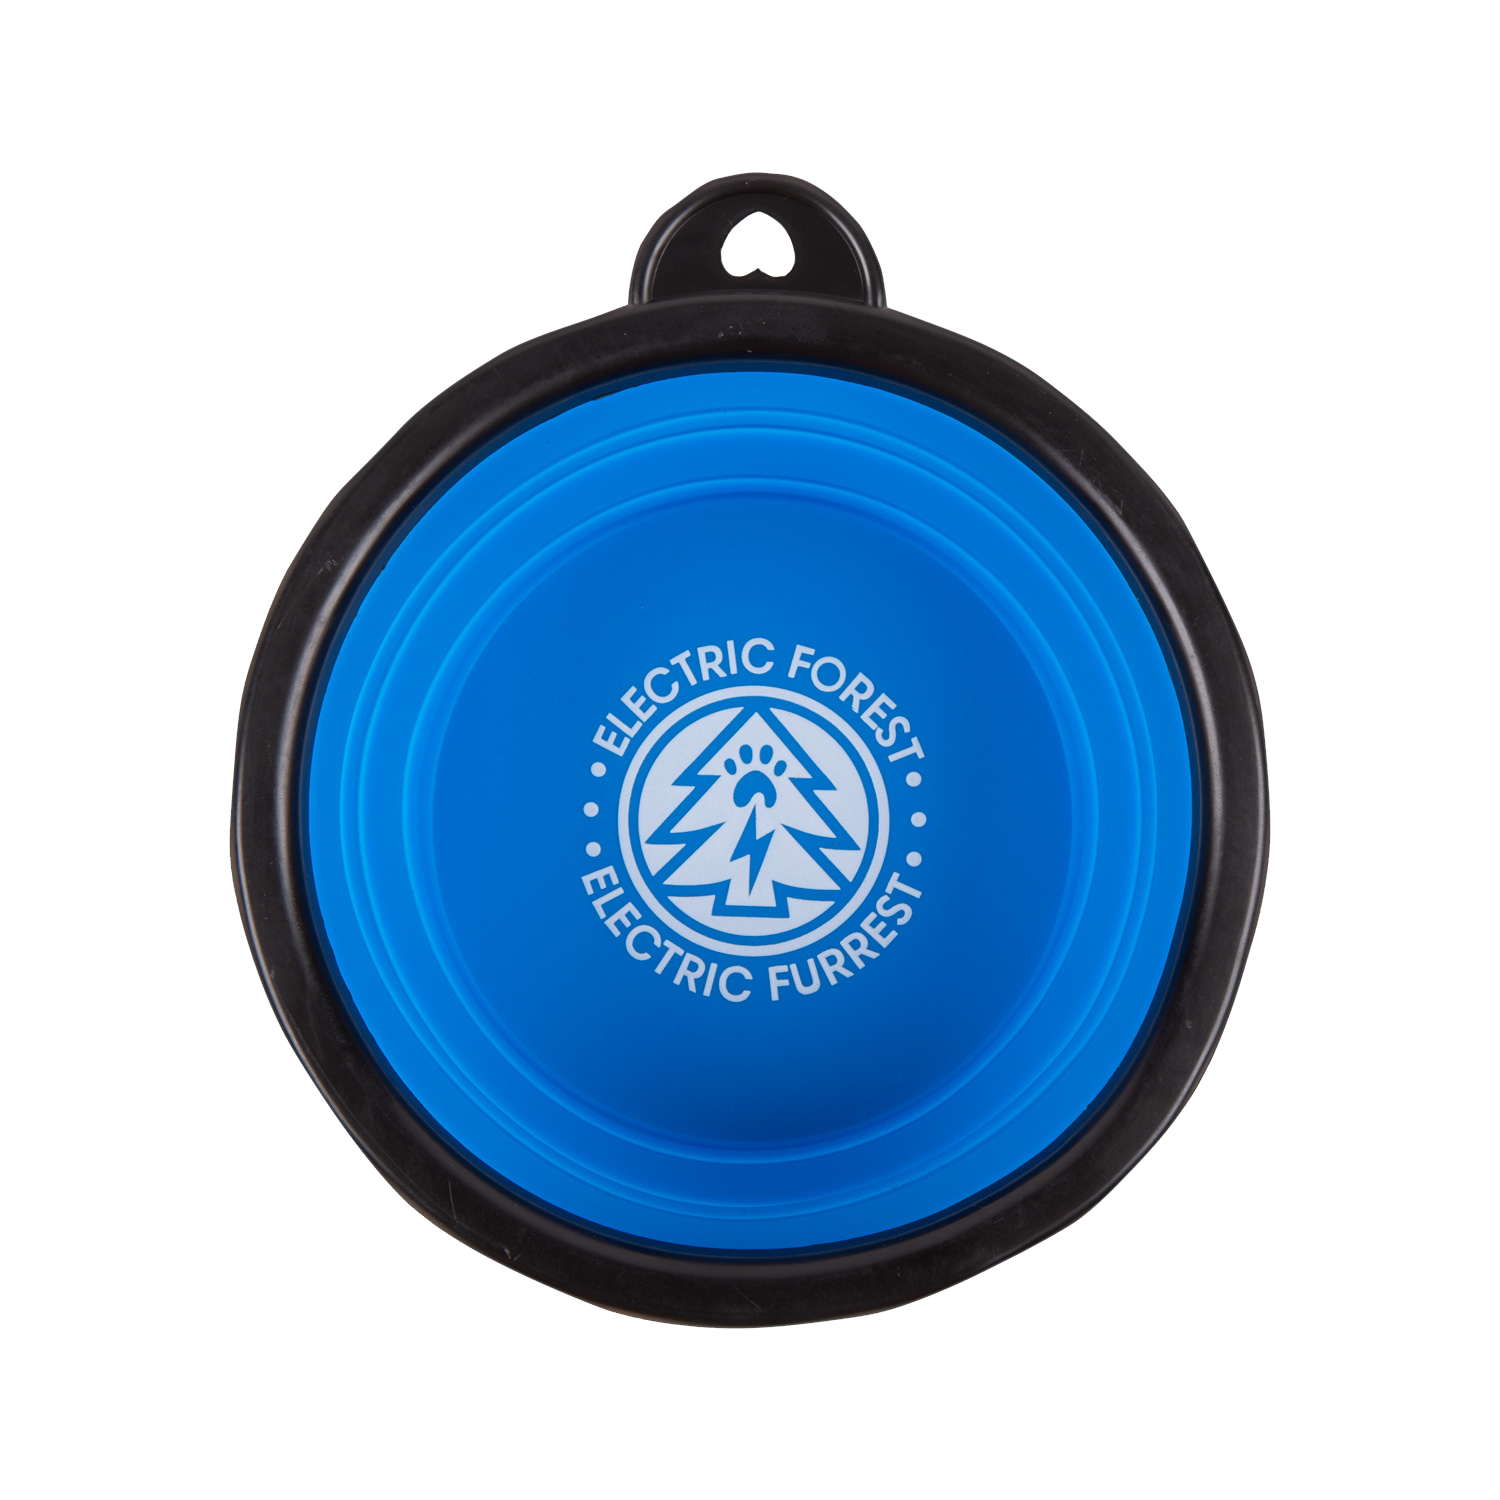 Electric Furrest Collapsible Pet Water Bowl